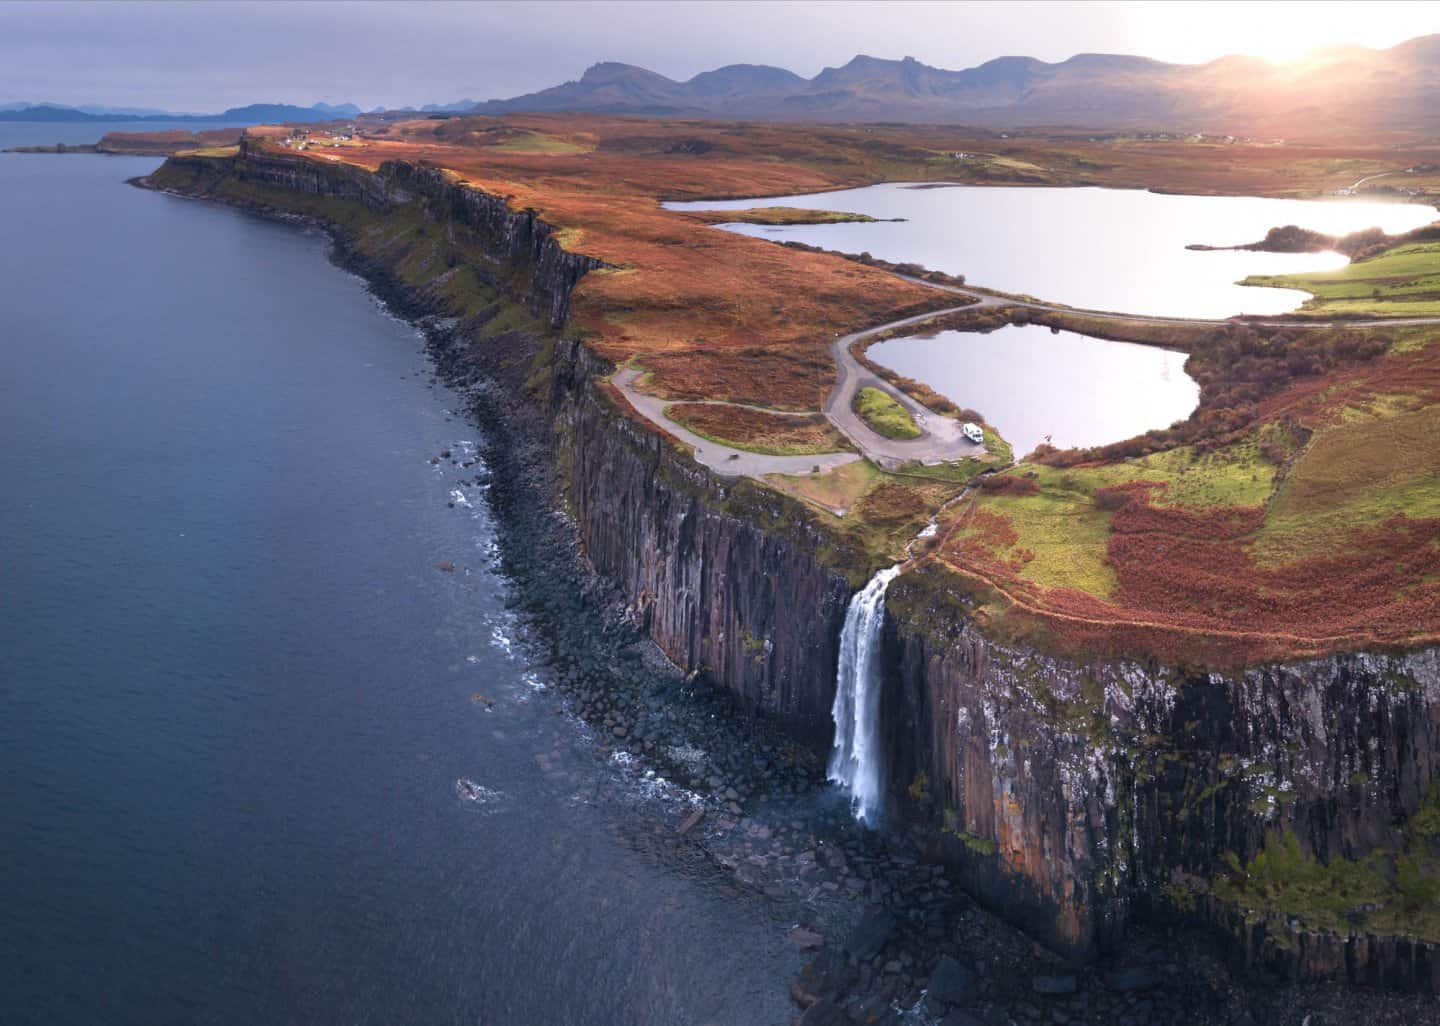 A drone shot reveals the landscape from high above Kilt Rock on the best Scotland road trip itinerary.